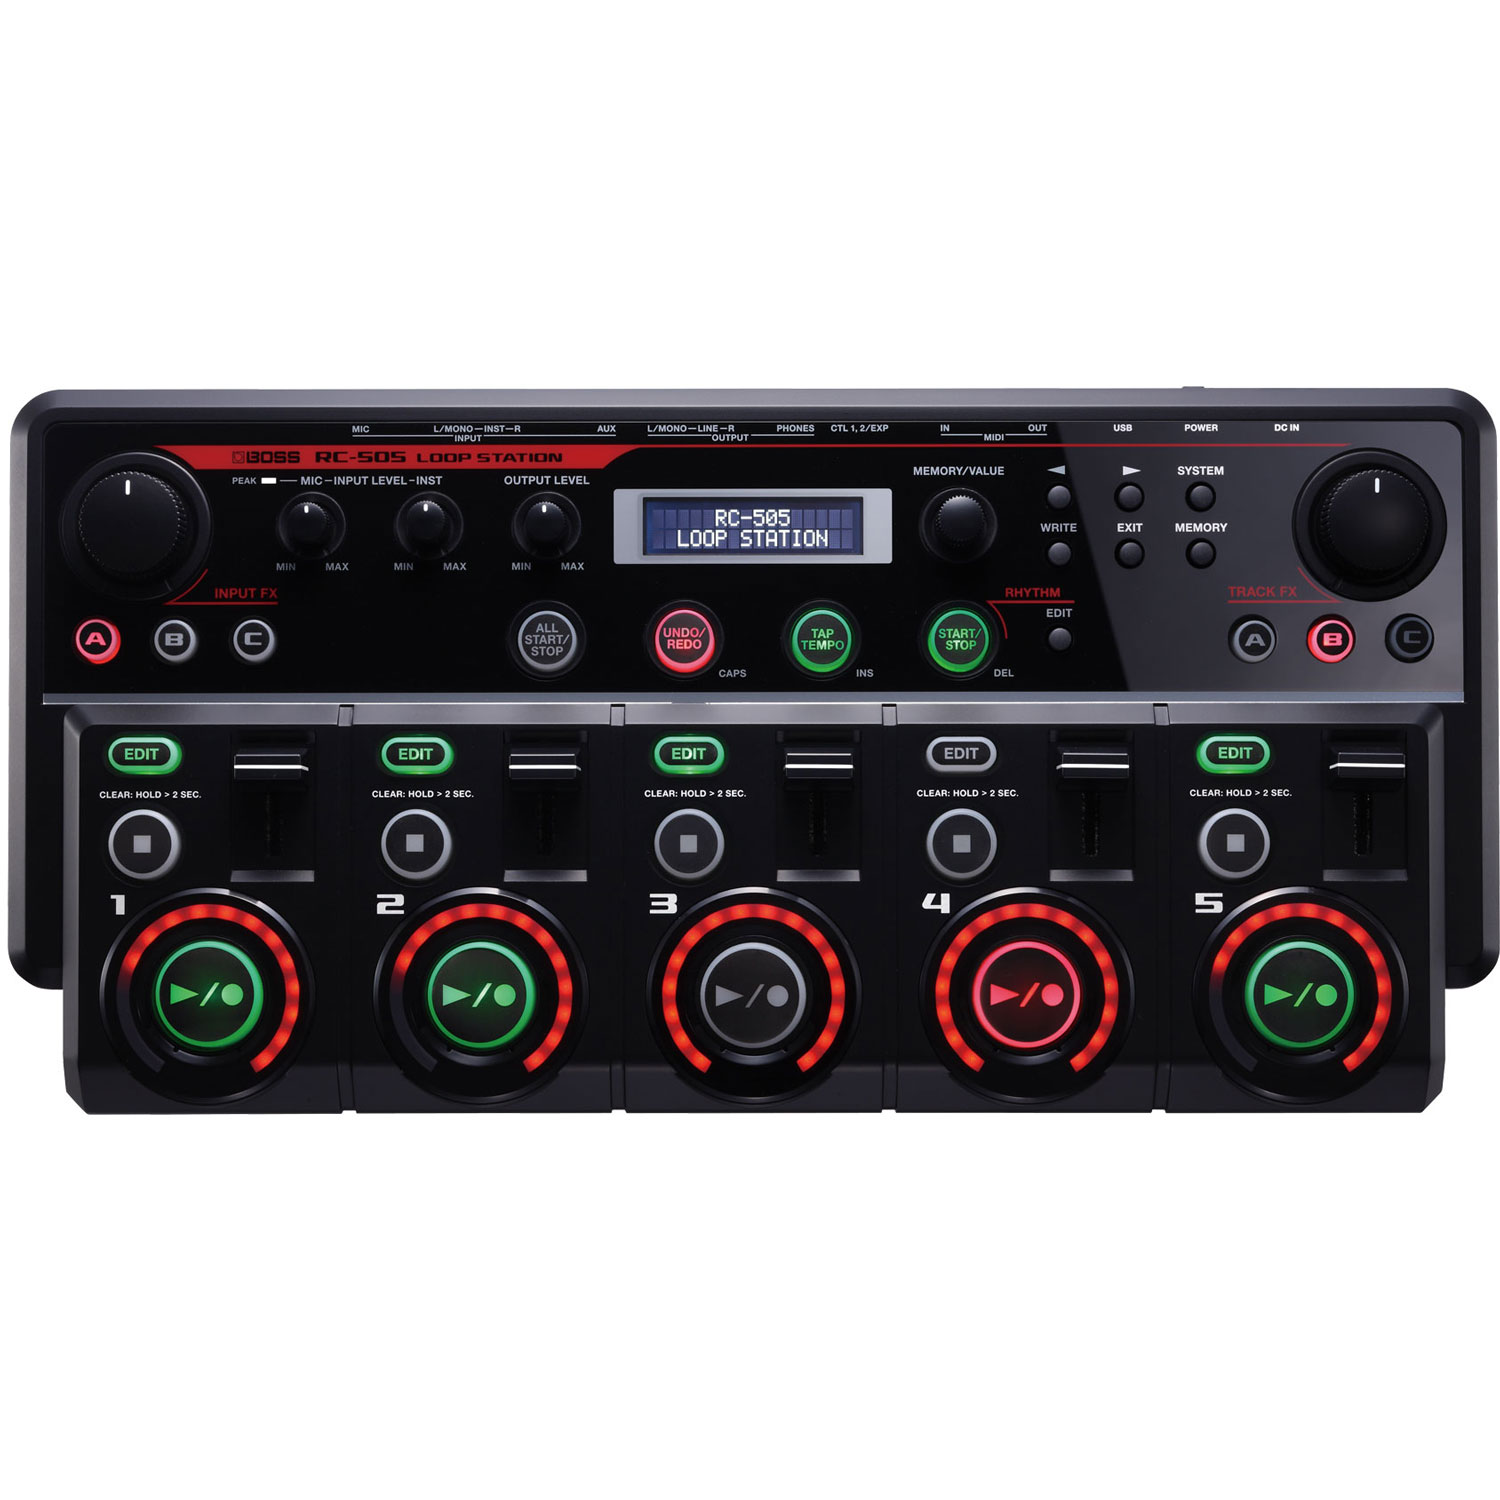 Boss RC-505 Guitar Effects 5 Stereo Phrase Tracks Tabletop Loop Station, Black by Boss